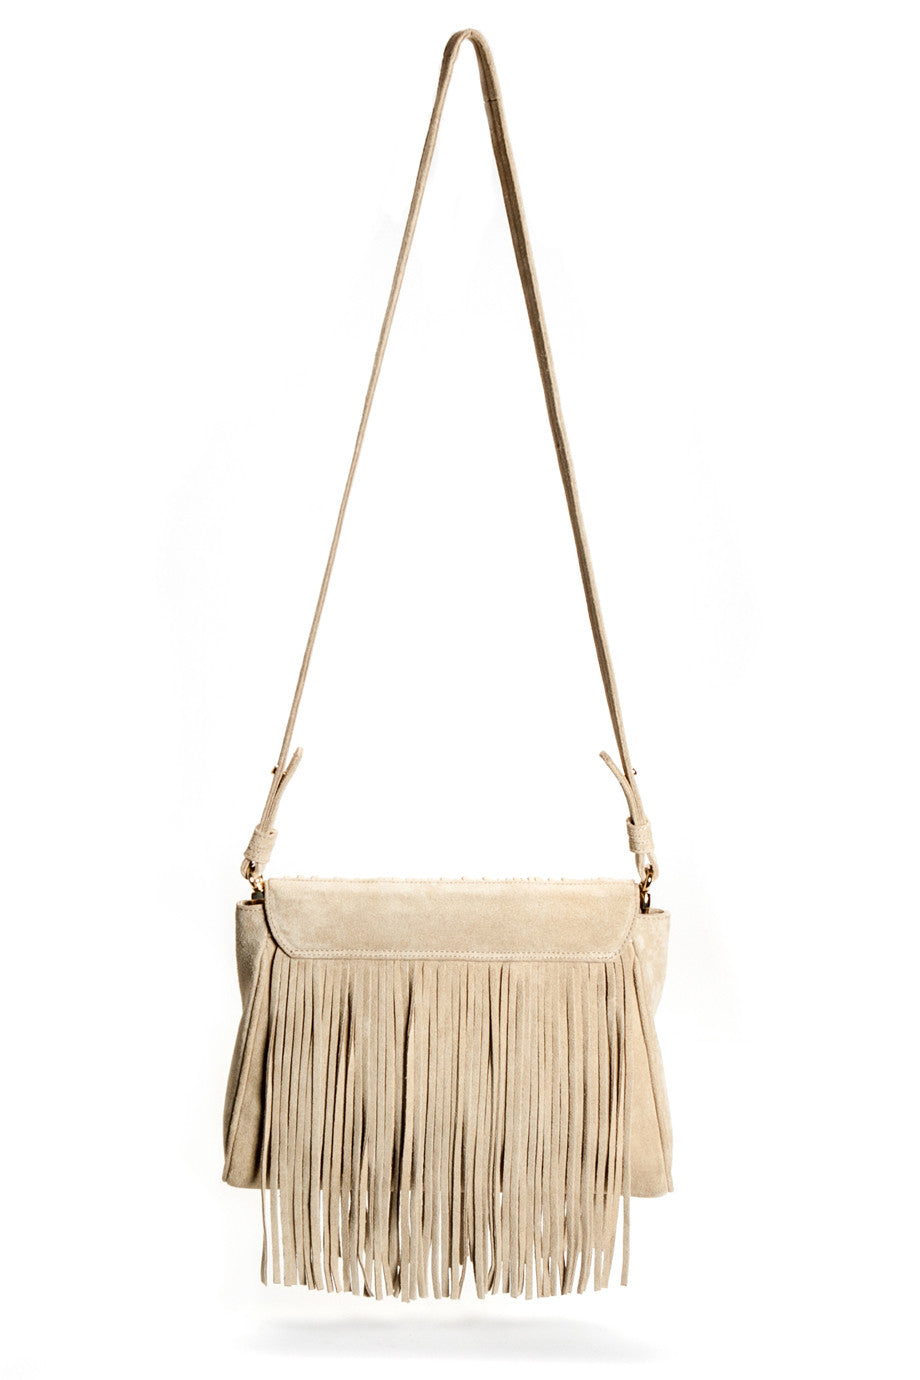 The 'June Moss' Beige Suede Fringe Handbag | Back View | Mel Boteri